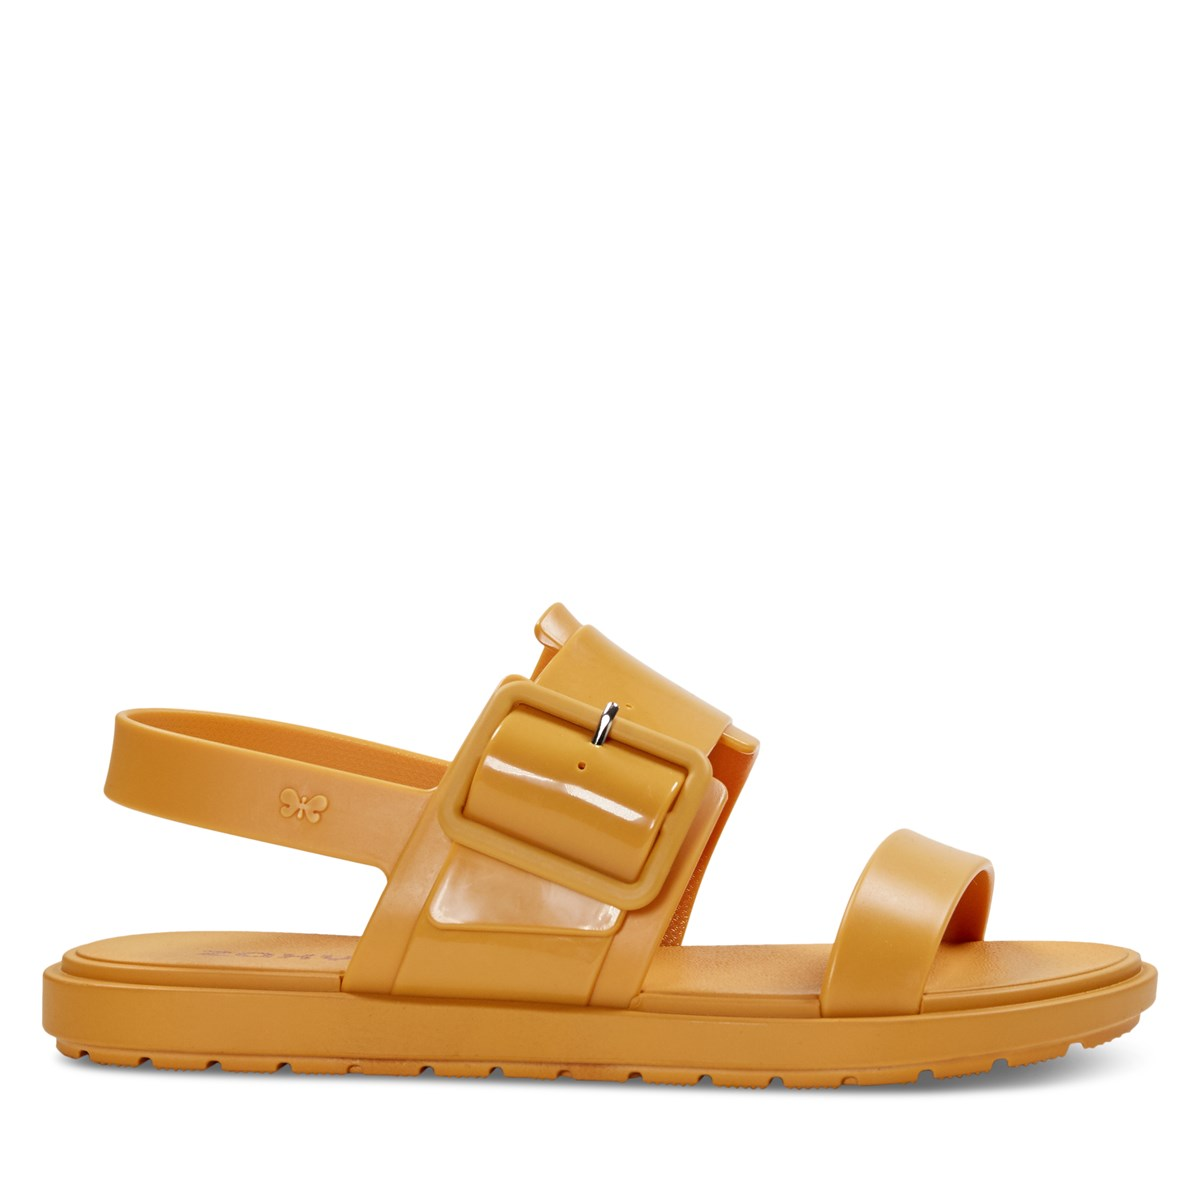 Women's Rush Sandals in Yellow